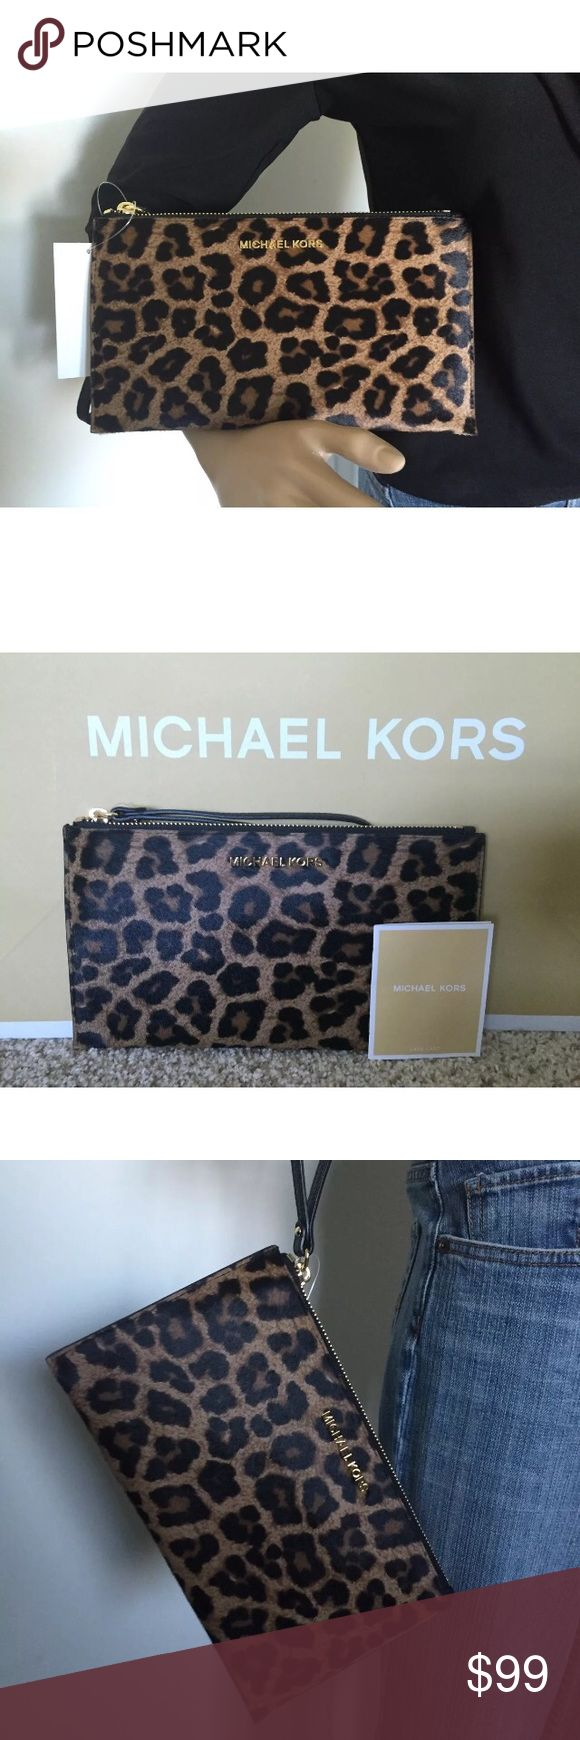 """💕 Michael Kors Leopard Haircalf Wristlet Clutch NWT MICHAEL MICHAEL KORS Leopard print HairCalf and LEATHER ZIP CLUTCH wallet wristlet purse   100% AUTHENTIC   Retails $168  Color: Leopard cheetah print  Brown black tan HairCalf with black leather trim  From MICHAEL Michael Kors Bedford collections  top zip closure Black leather wrist strap Gold-tone hardware Michael Kors logo plate on front Inside, Michael Kors signature lining w/ one pocket and 6 credit card slots 10(L) x 5.5(H) with 7""""…"""